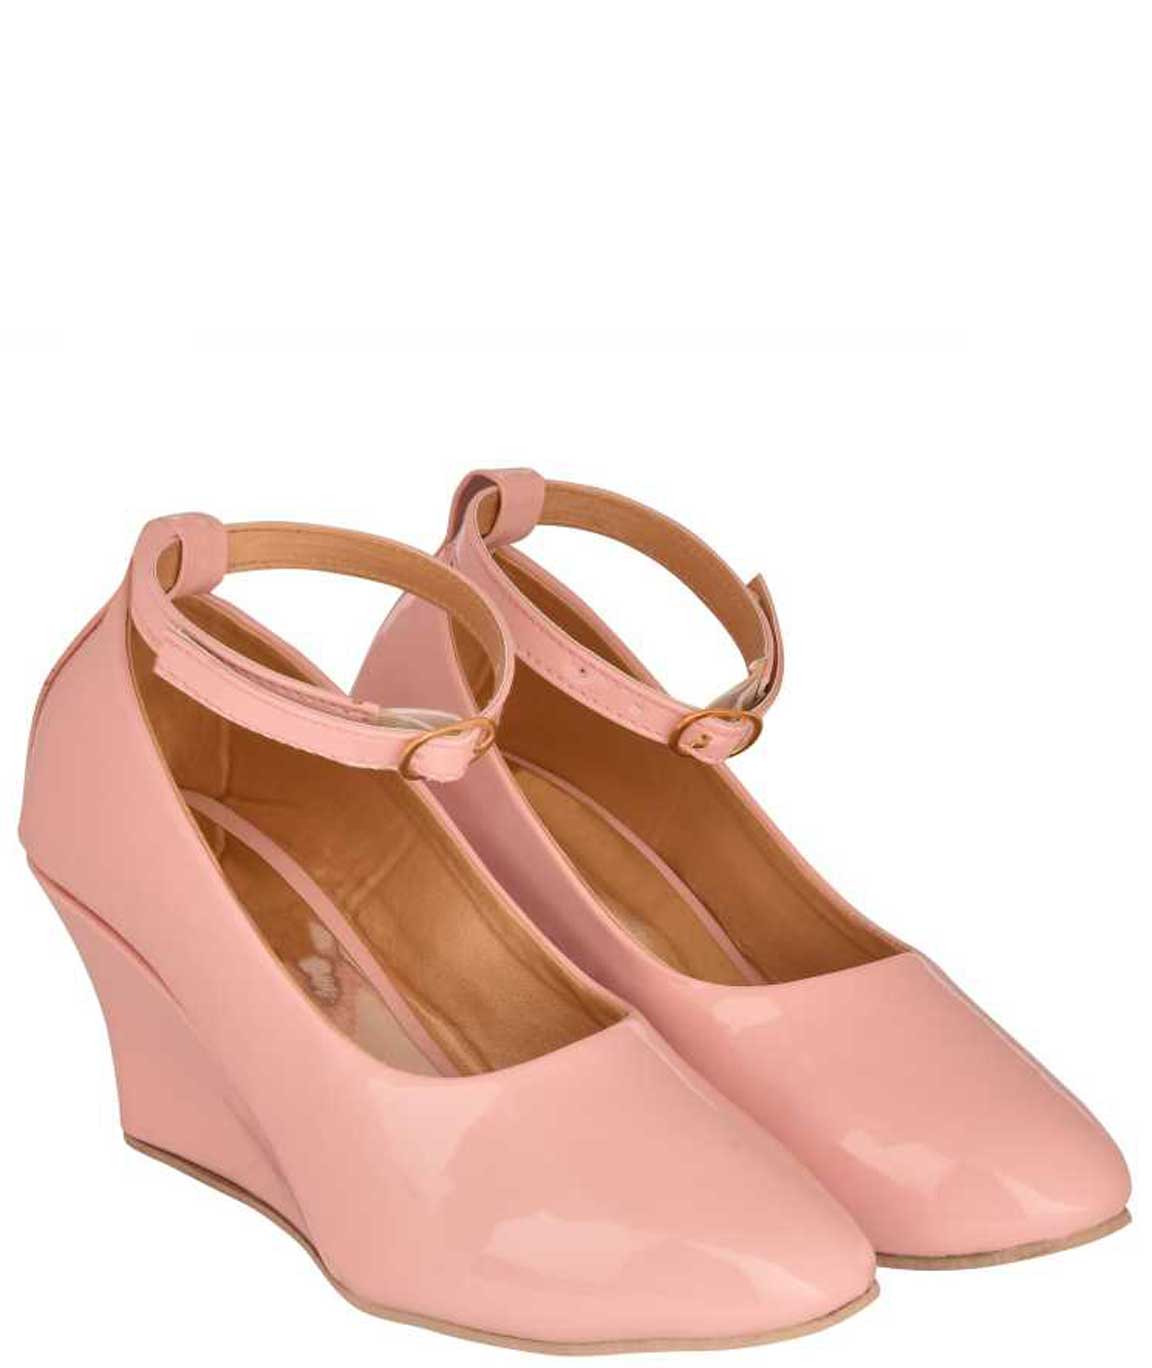 WOMEN PINK WEDGES BELLY